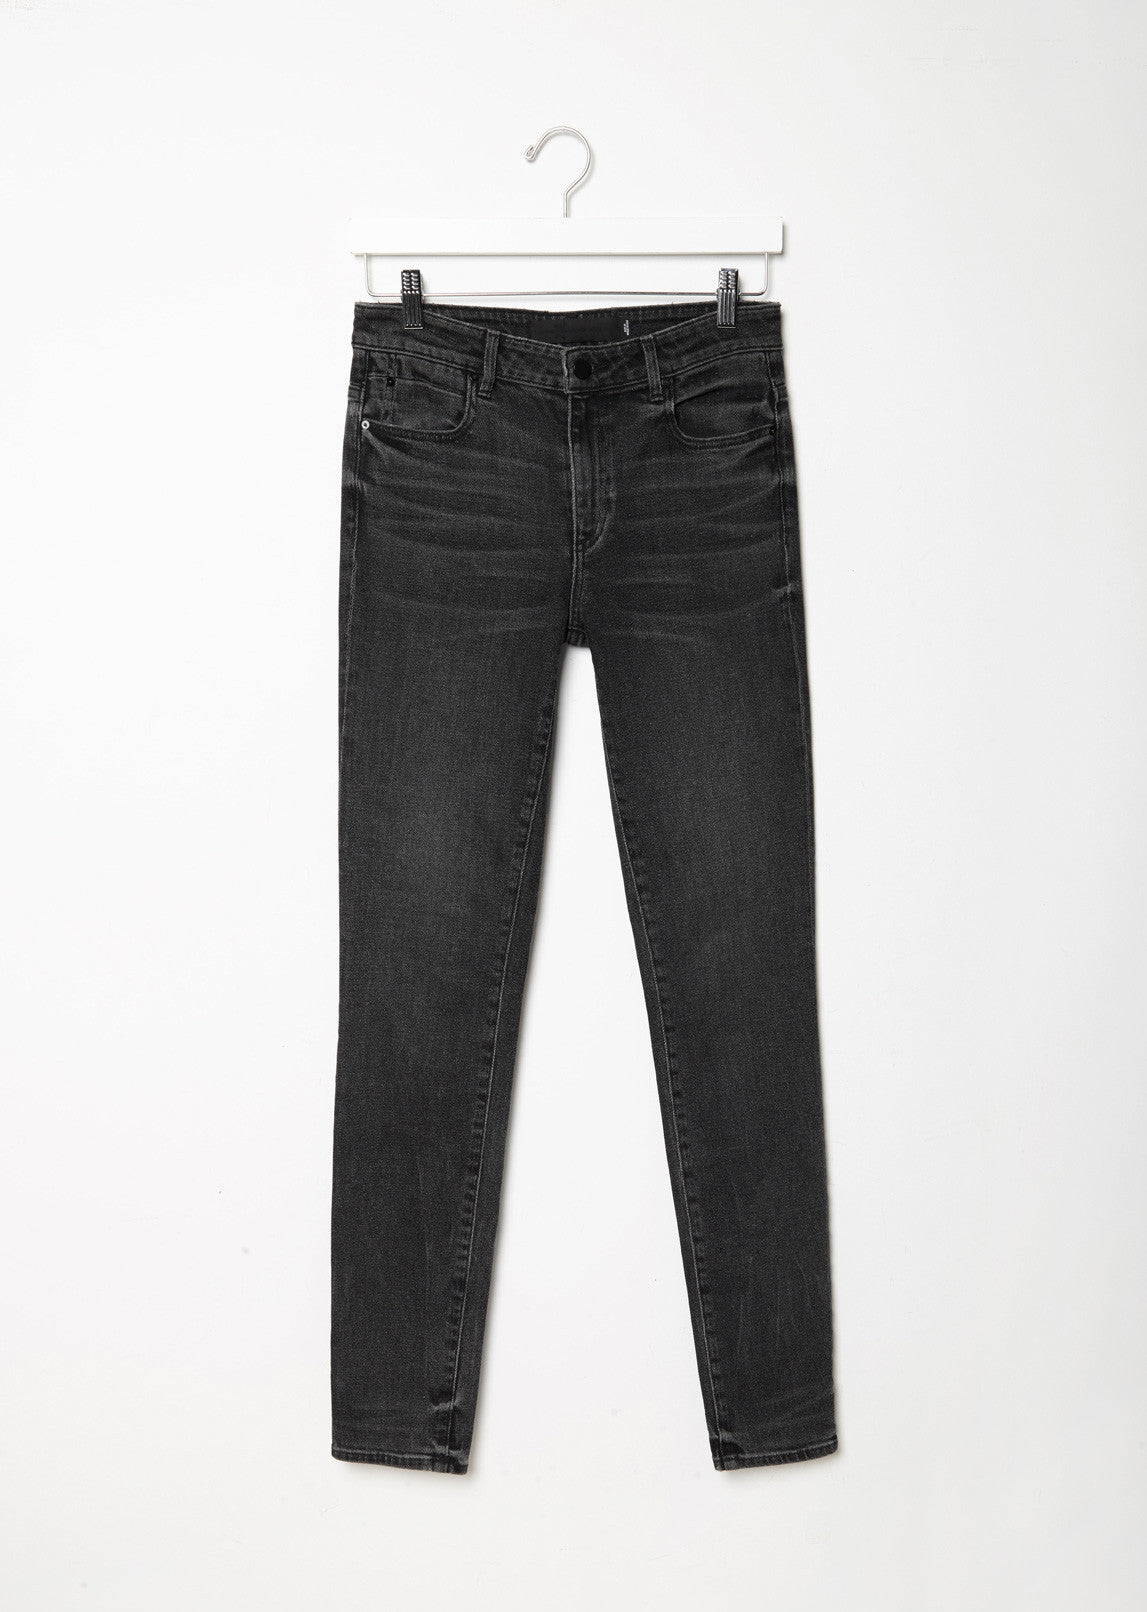 Grip High Rise Skinny Jeans